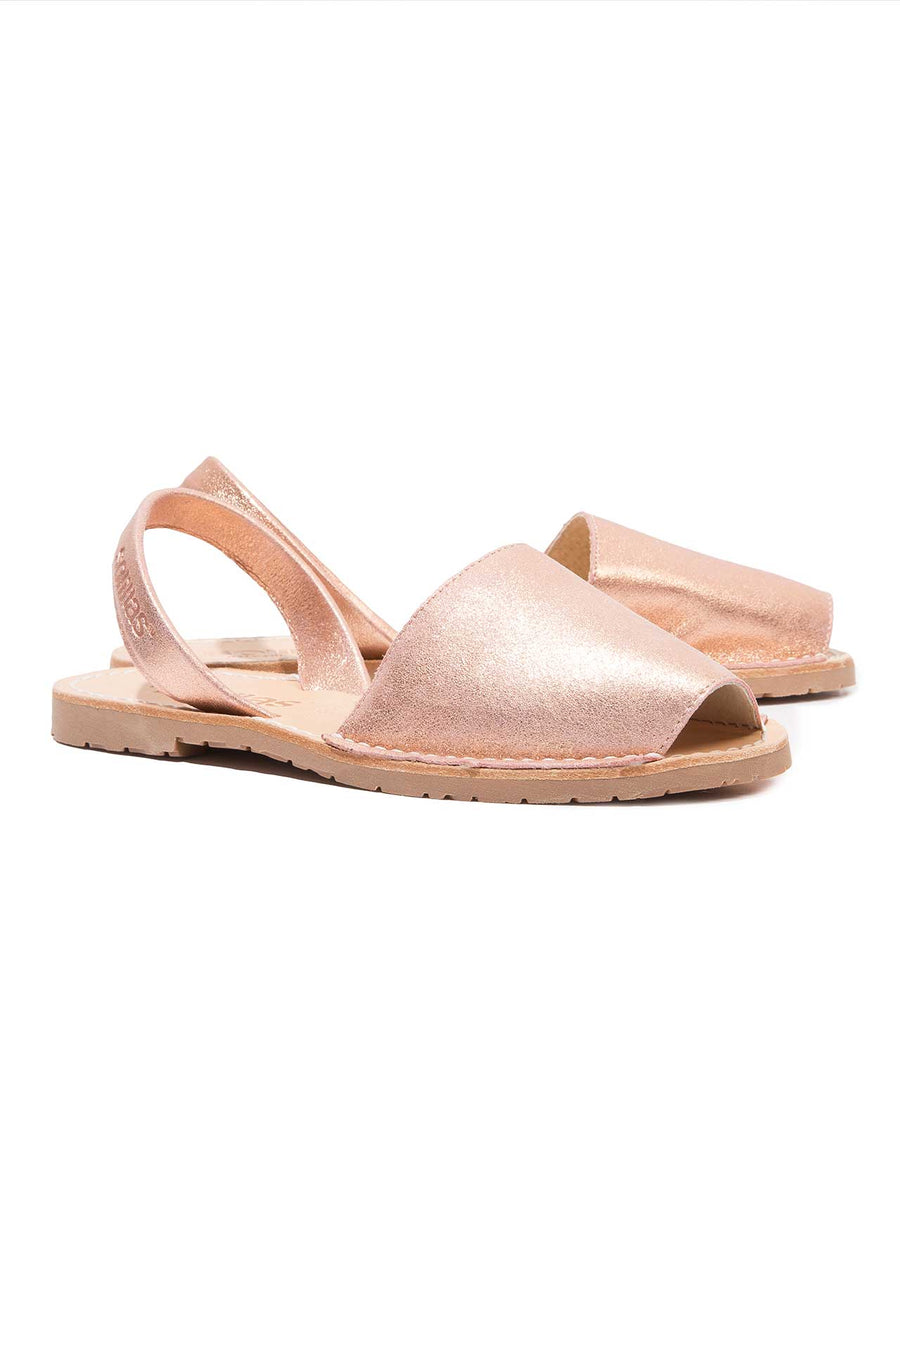 Rose Gold Menorcan Sandals for Women, made in Spain by Solillas Australia, positioned view